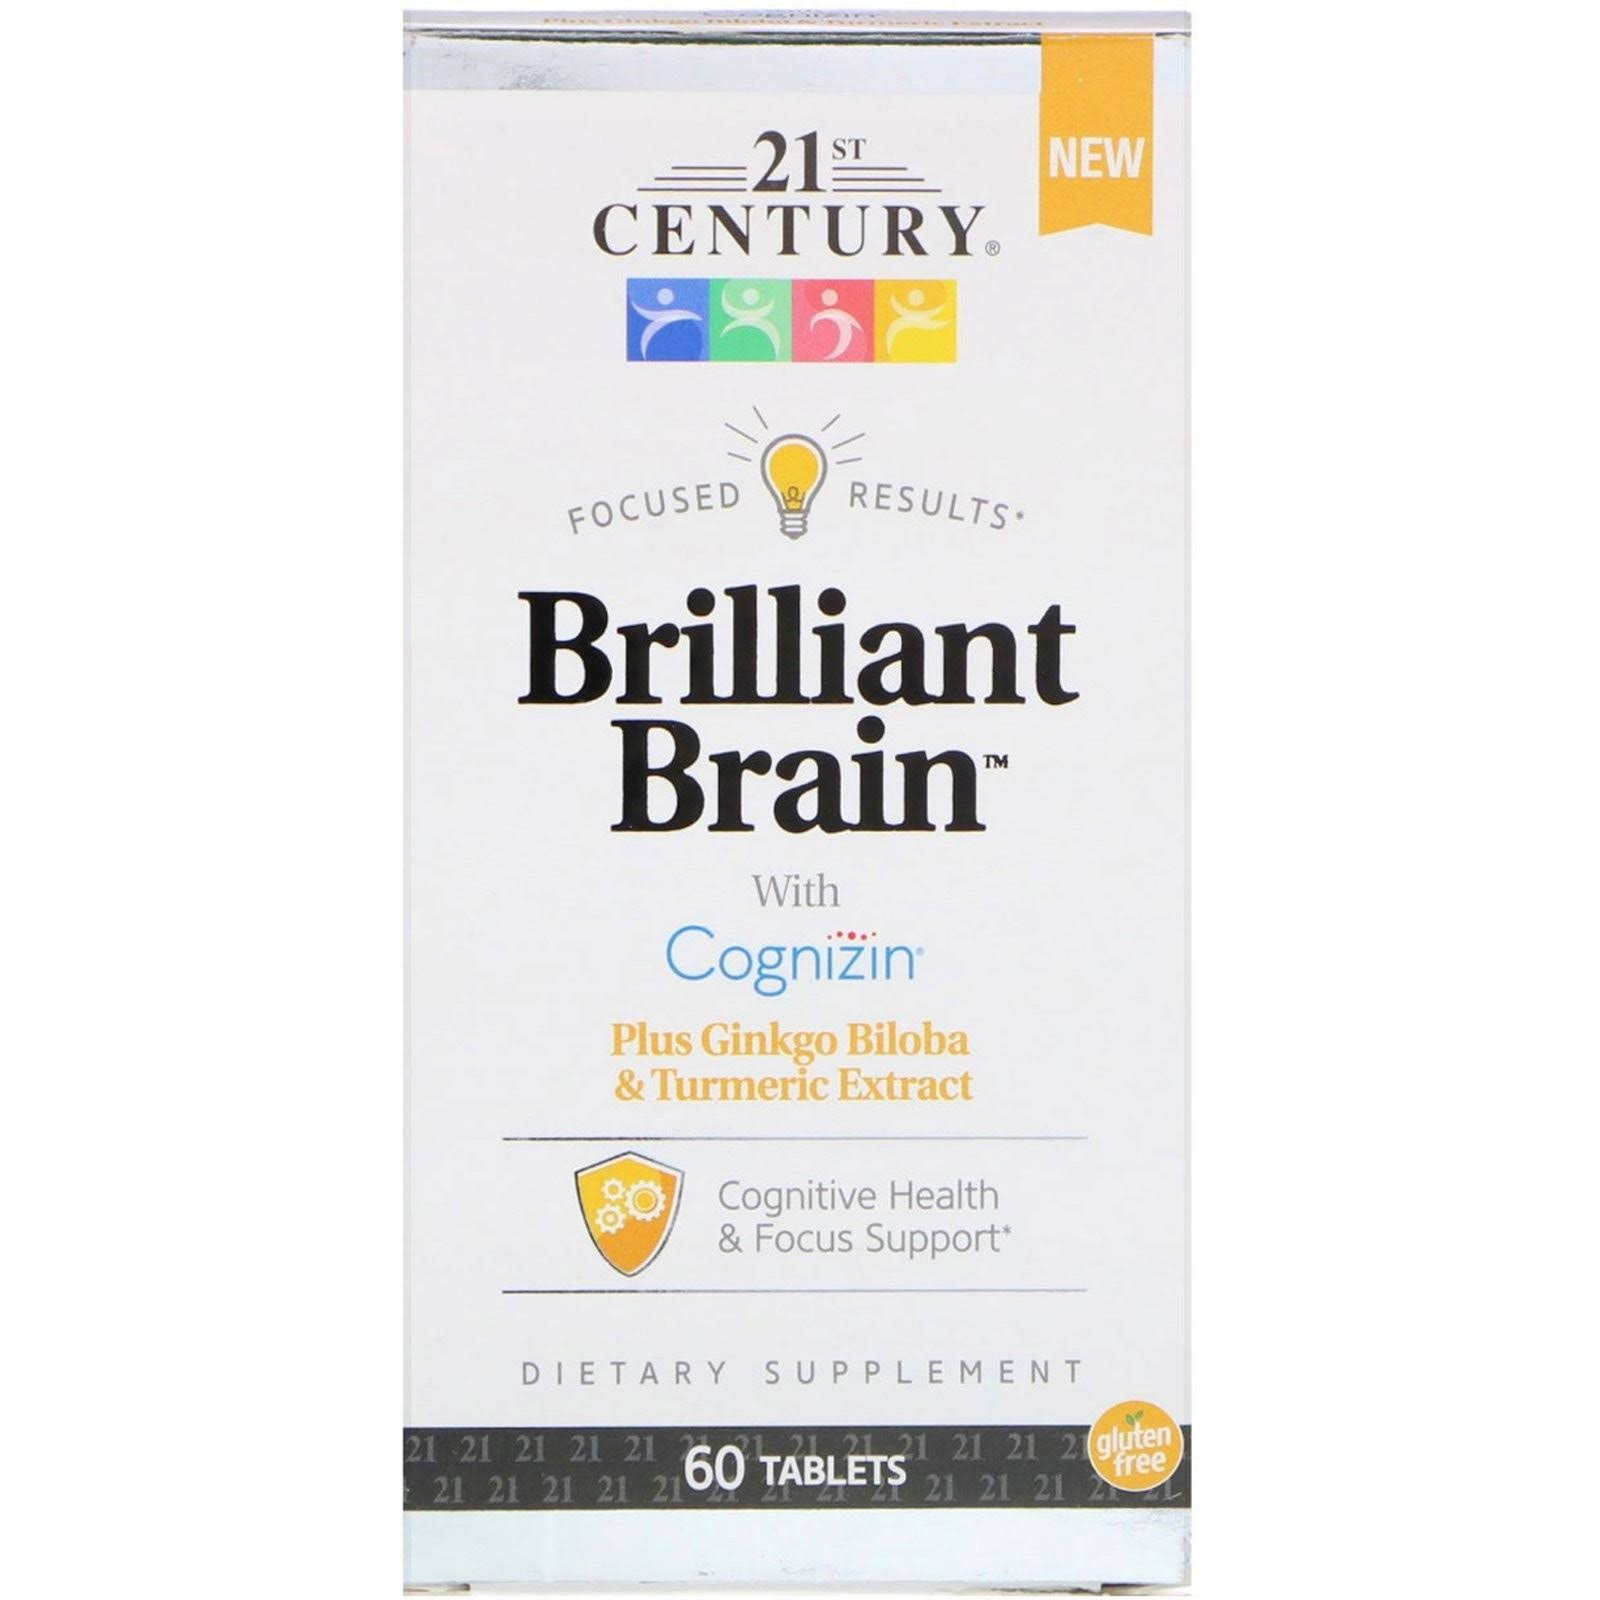 21st Century Brilliant Brain Tablets - 60ct